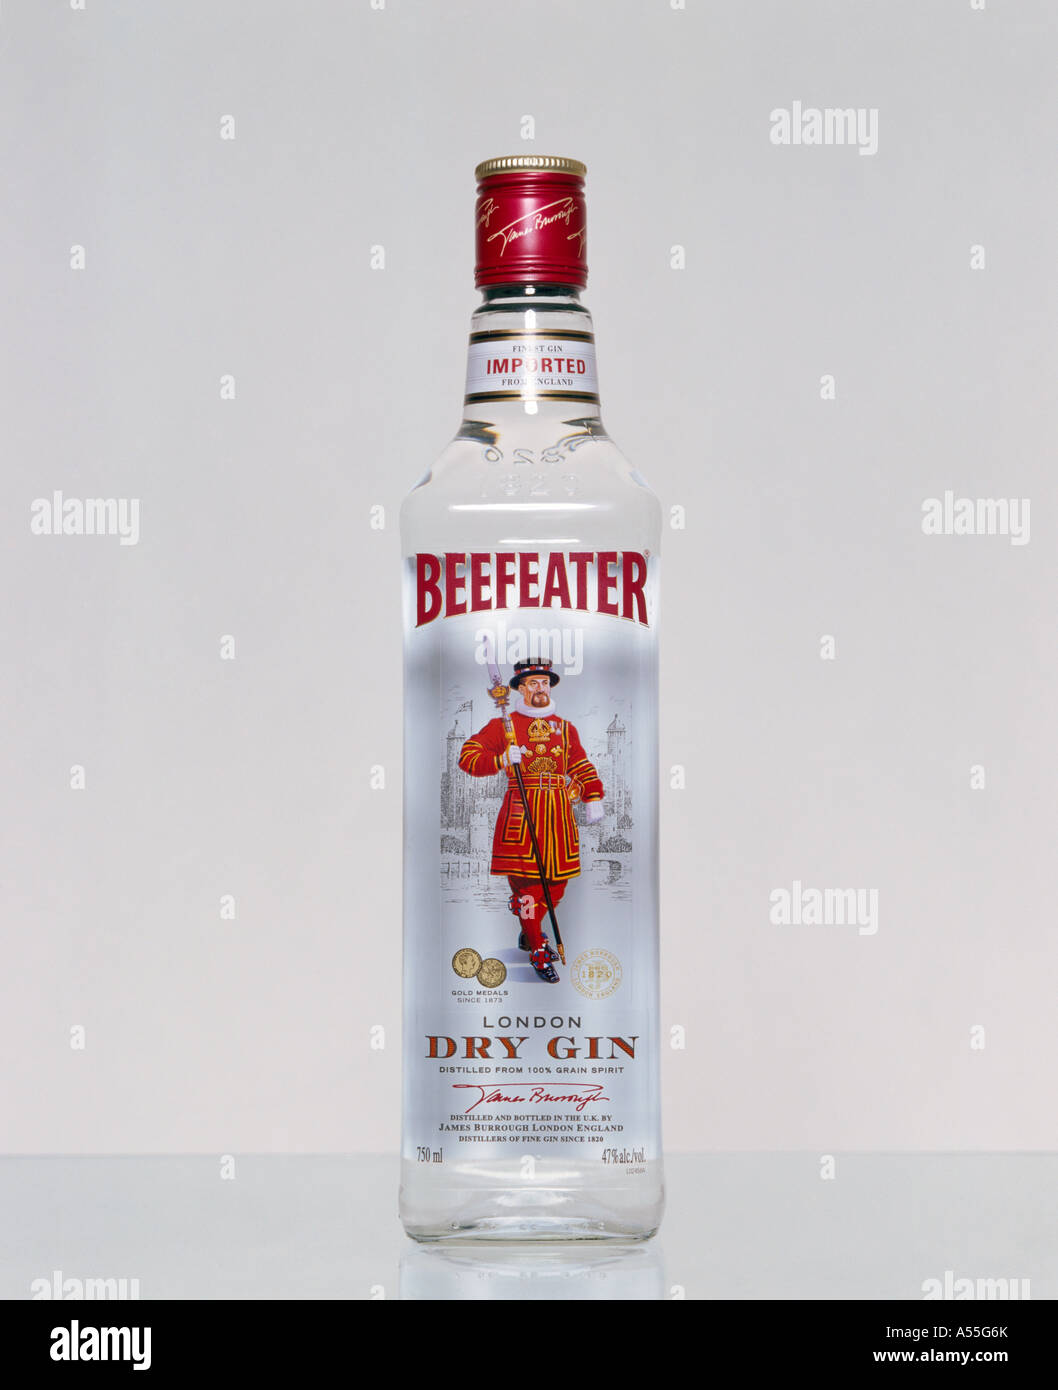 Beefeater London Dry Gin Flasche Stockfoto Bild 11204106 Alamy